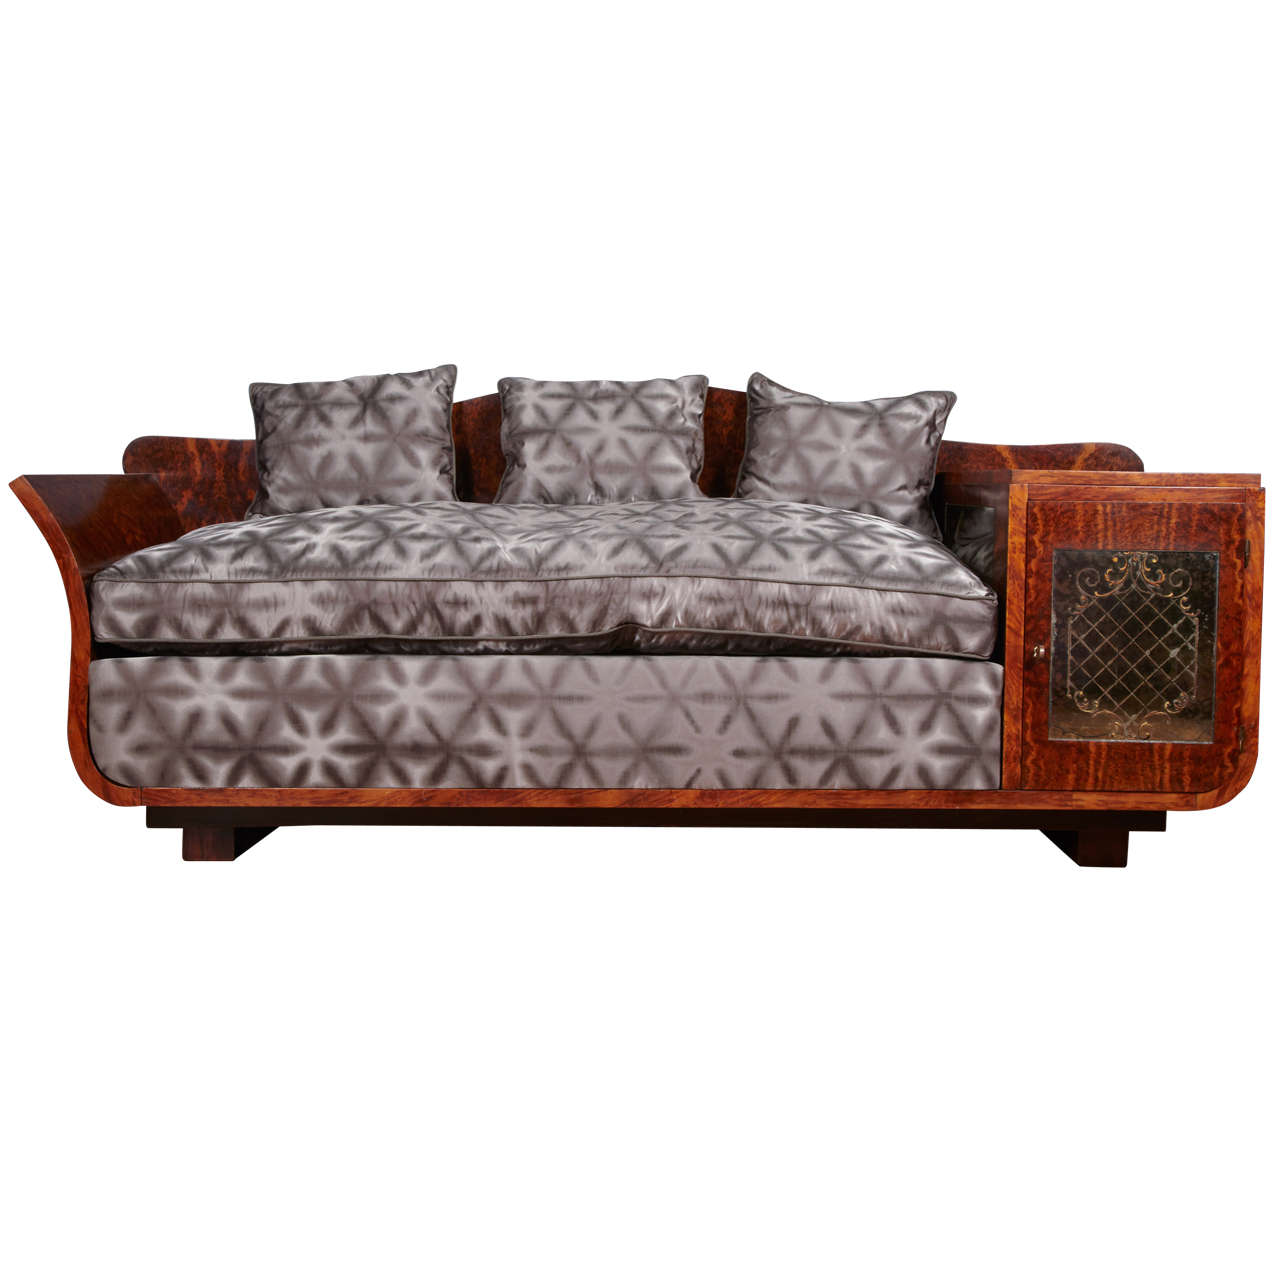 extraordinary art deco sofa at 1stdibs. Black Bedroom Furniture Sets. Home Design Ideas